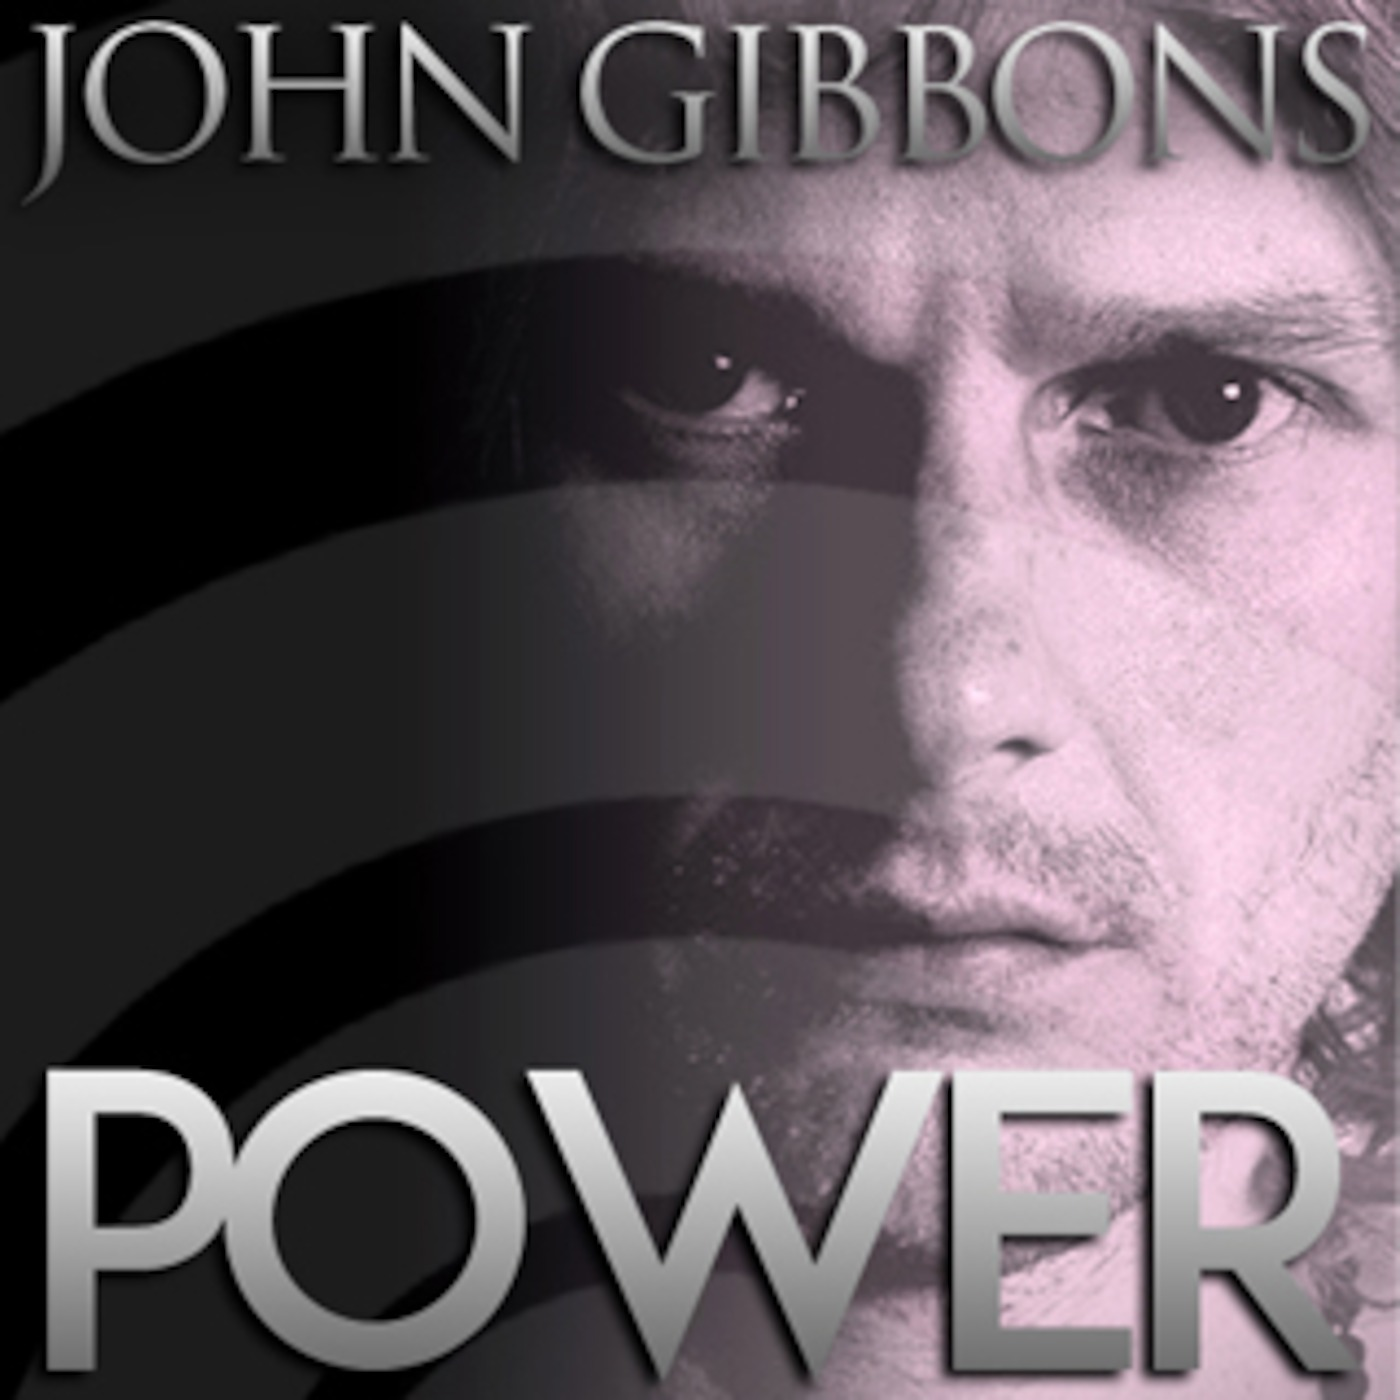 POWER with John Gibbons